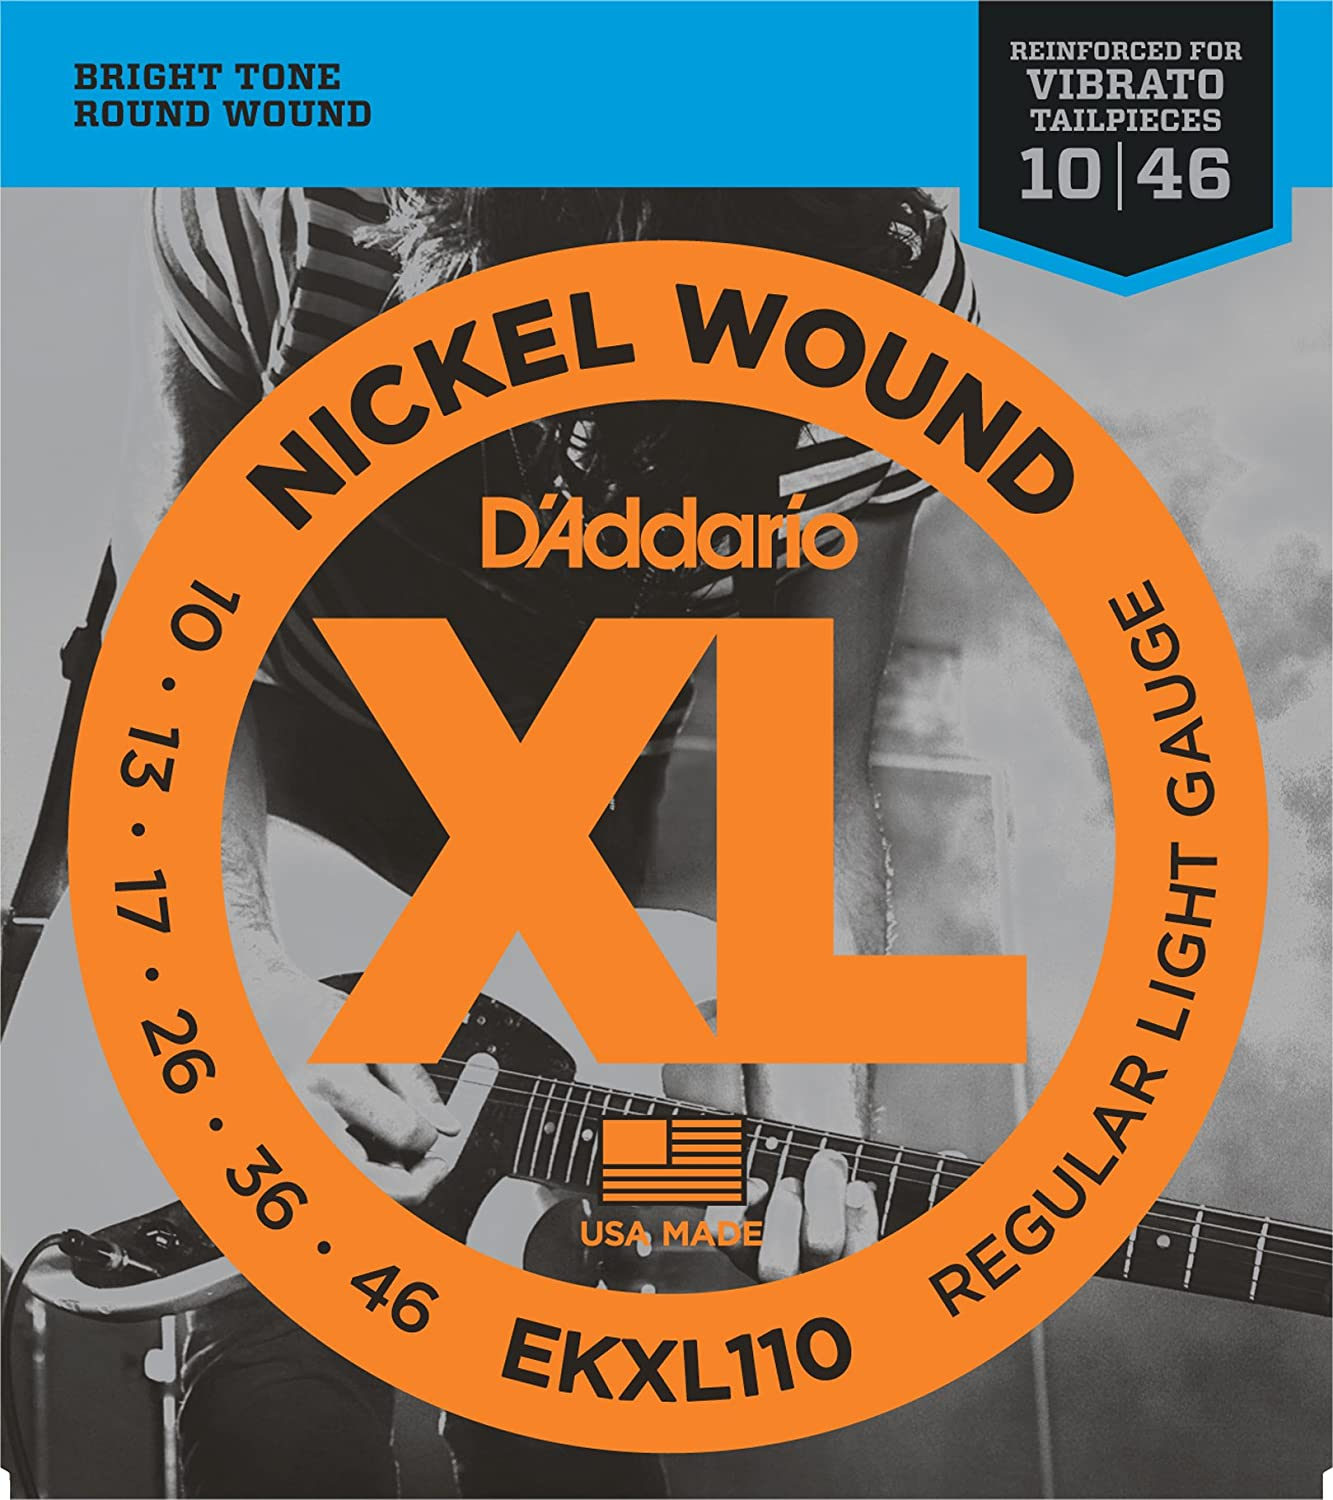 d addario ekxl110 nickel wound electric guitar strings